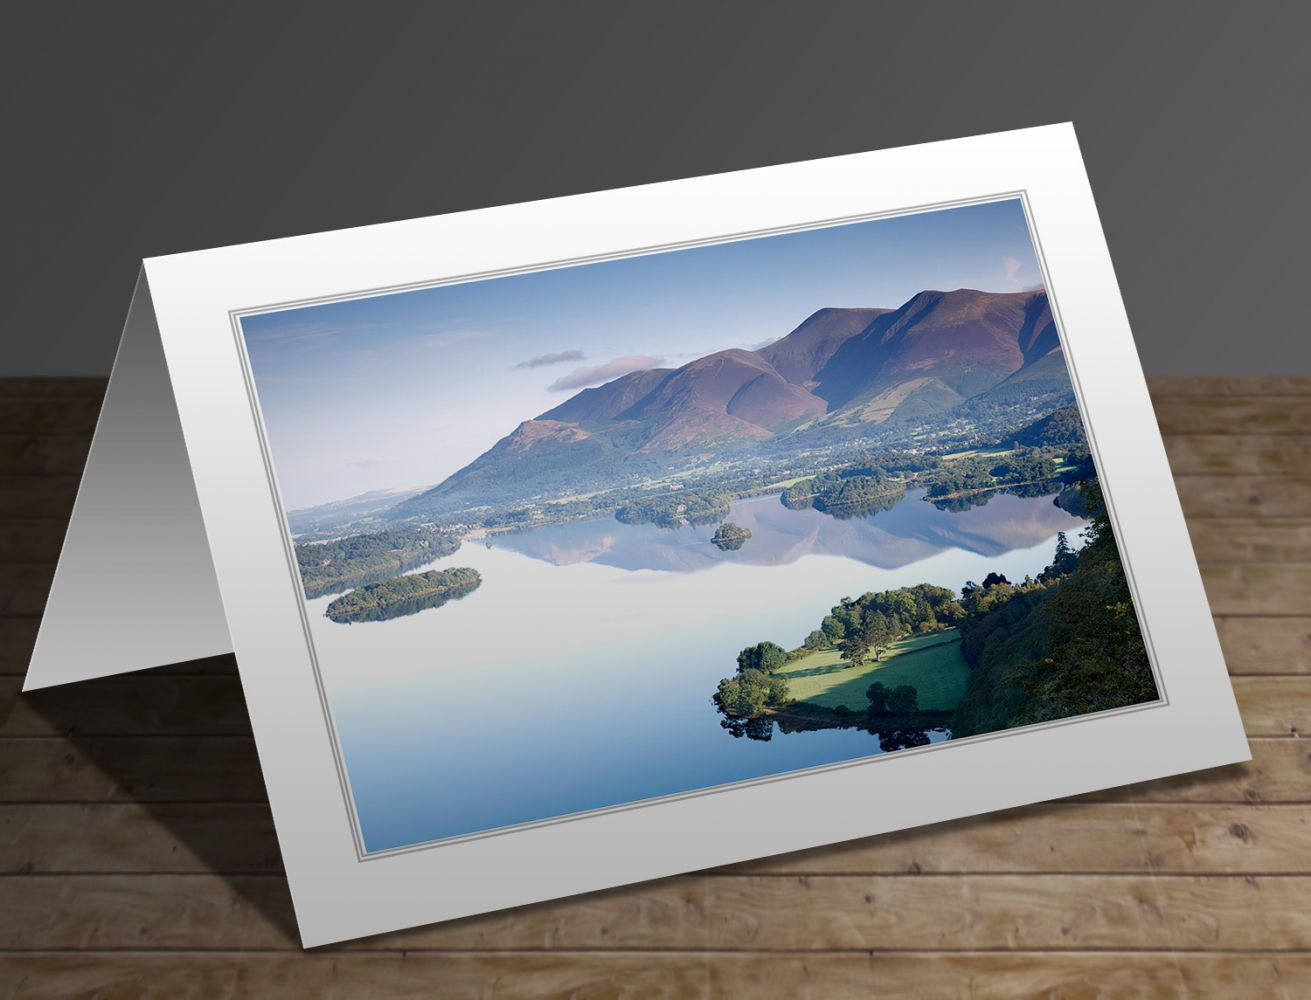 A greetings card containing the image Reflections of Skiddaw and Derwentwater from Surprise View - Martin Lawrence